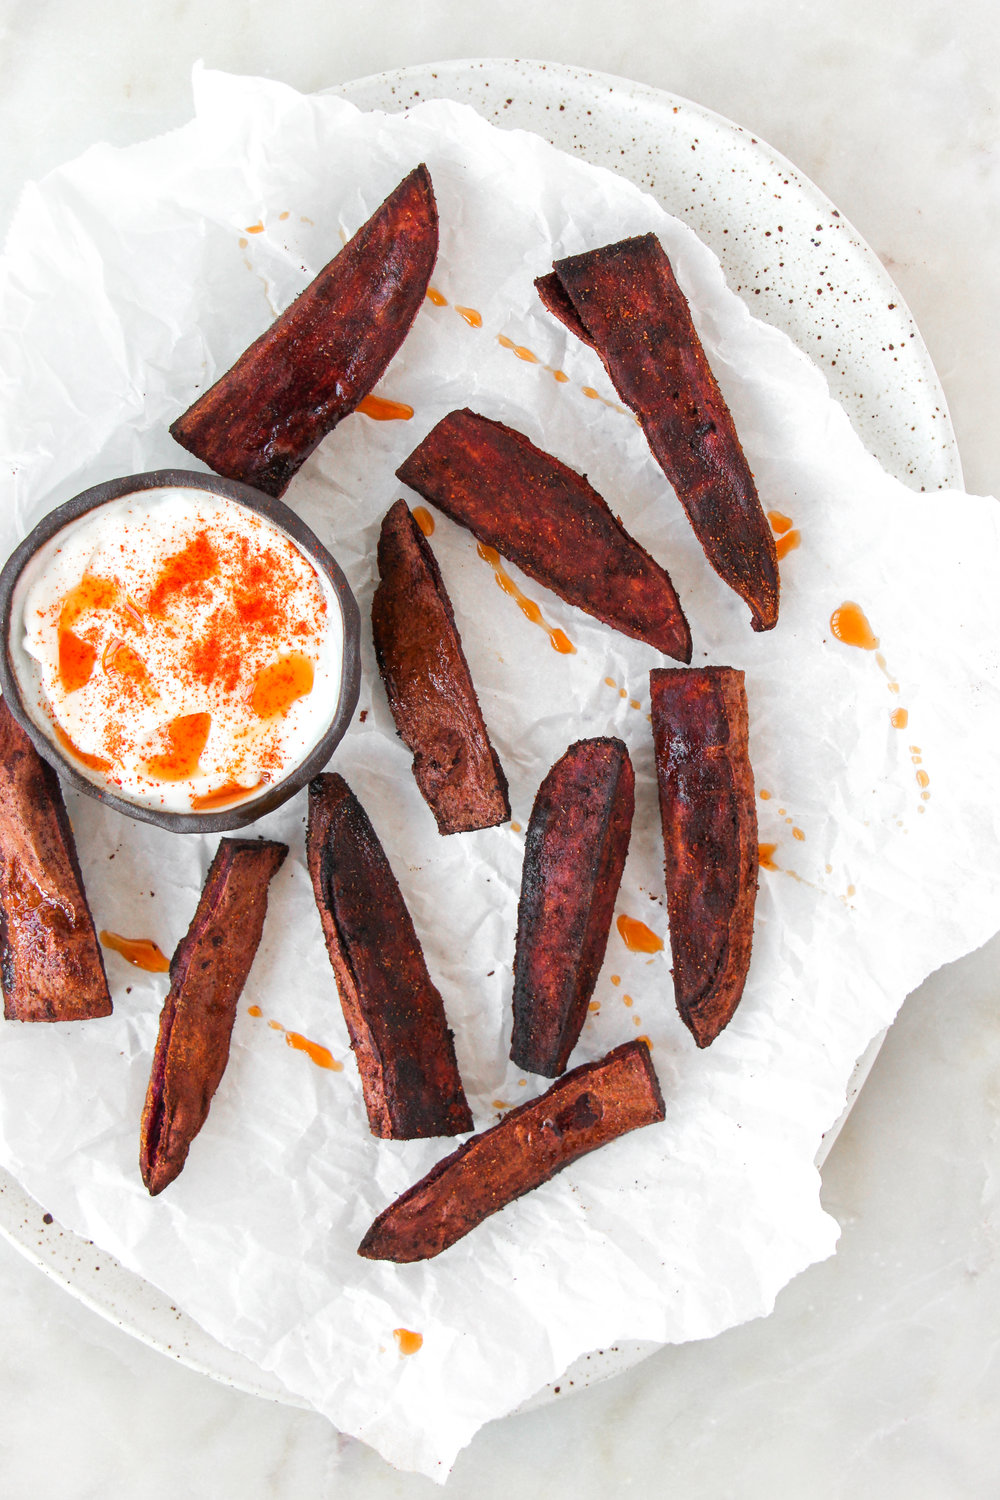 paleo purple sweet potato fries // #ShiraRD #paleo #refinedsugarfree #SnacksbyShira